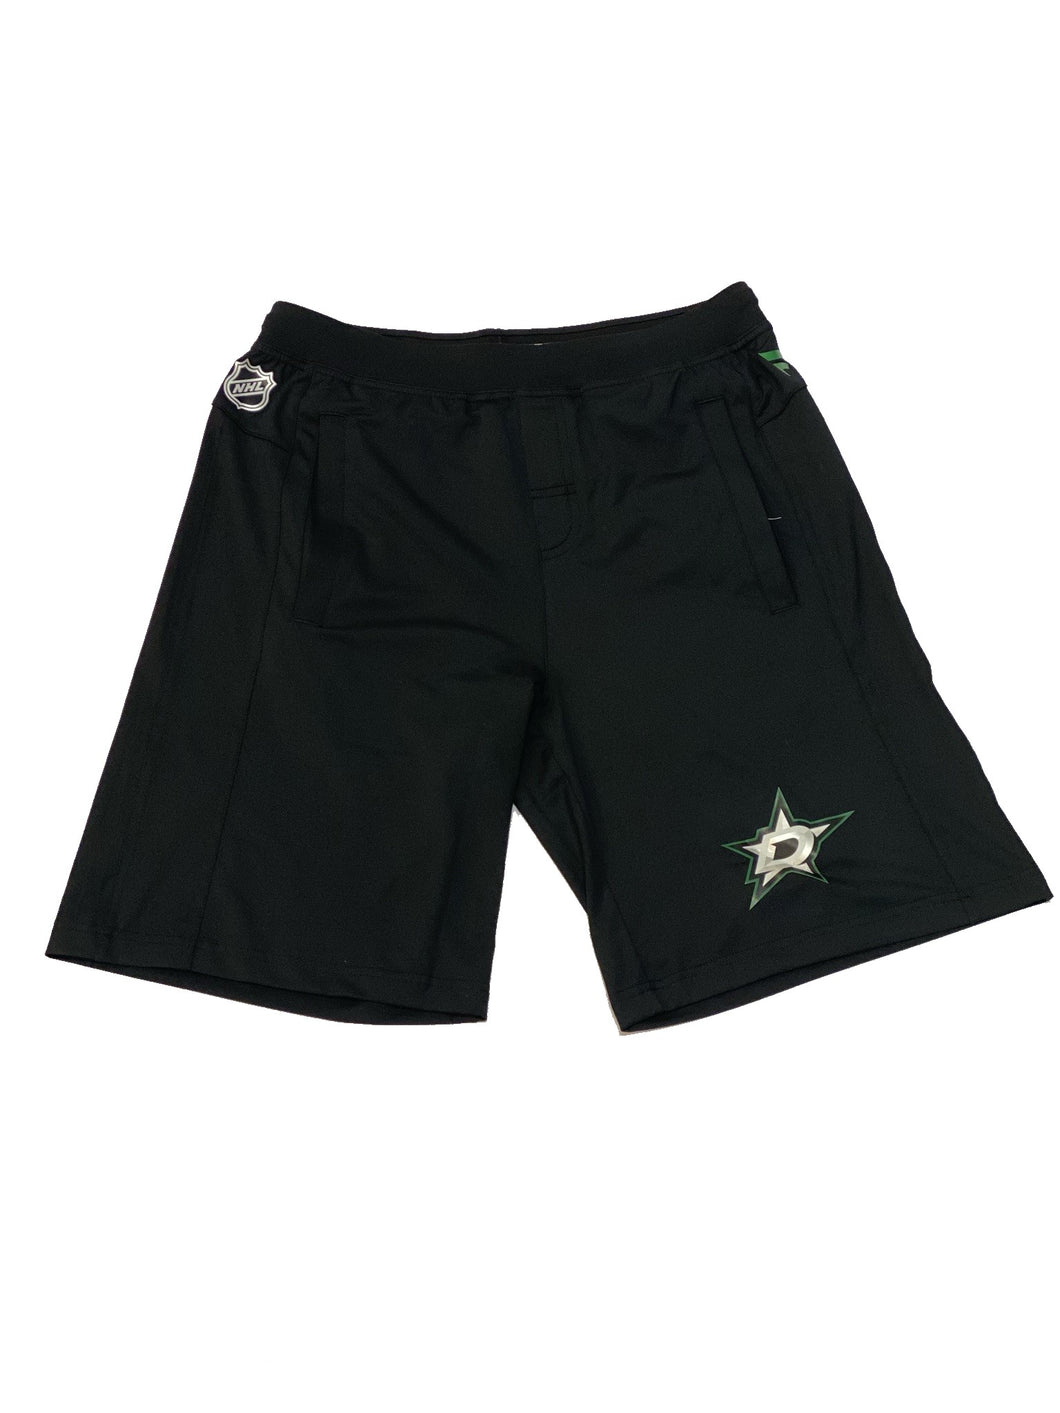 DALLAS STARS FANATICS AUTHENTIC PRO PERFORMANCE SHORT